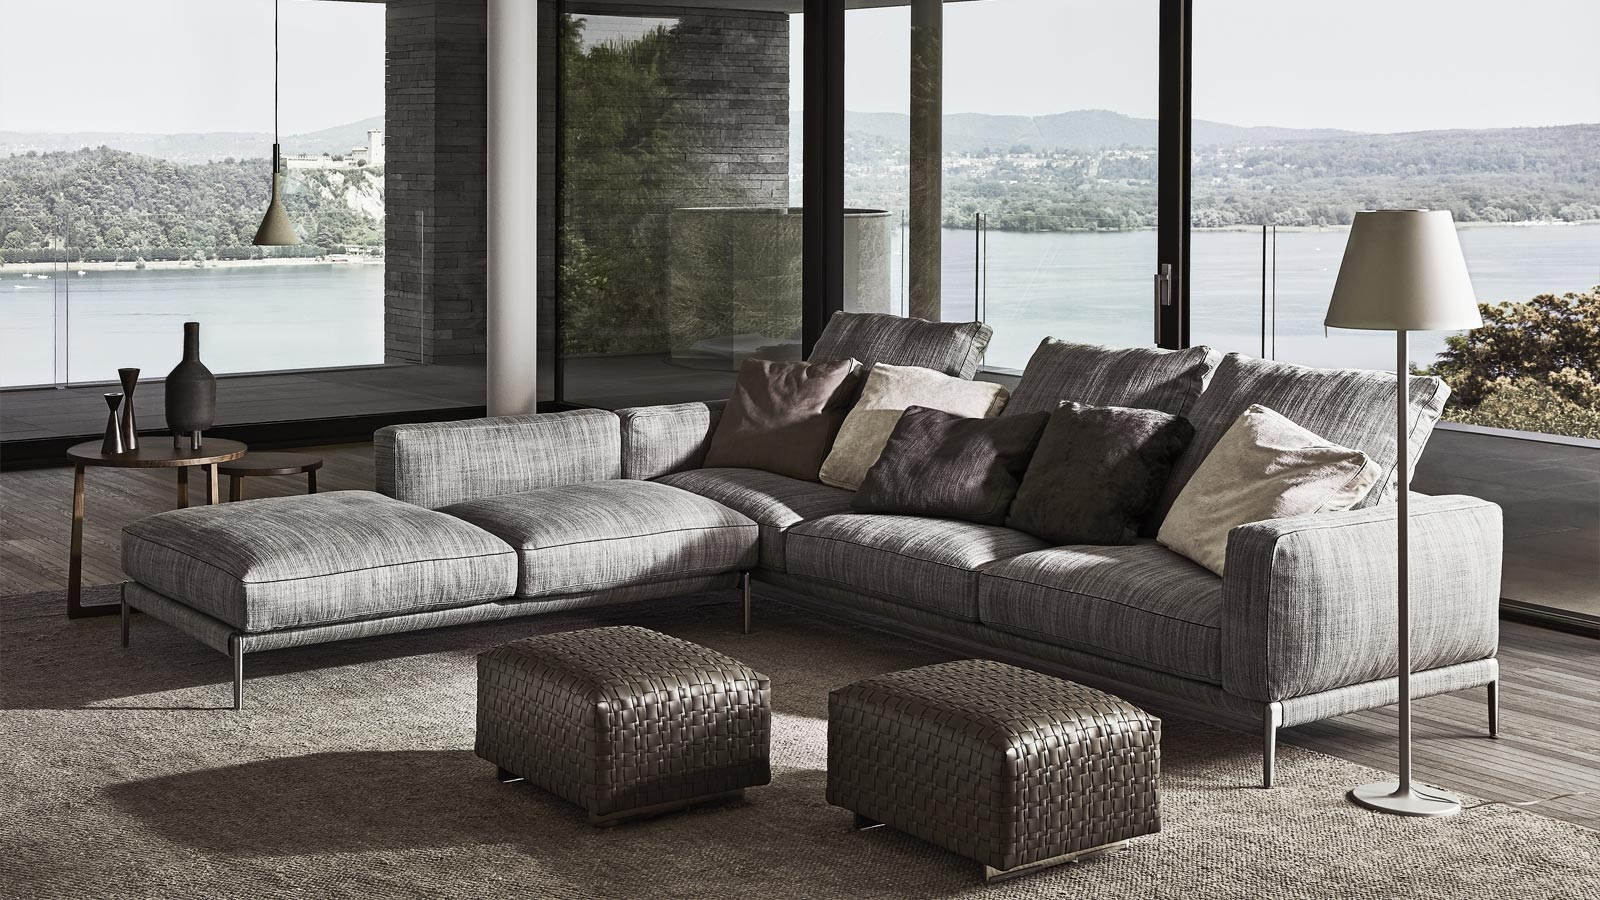 Flexform sectional sofa